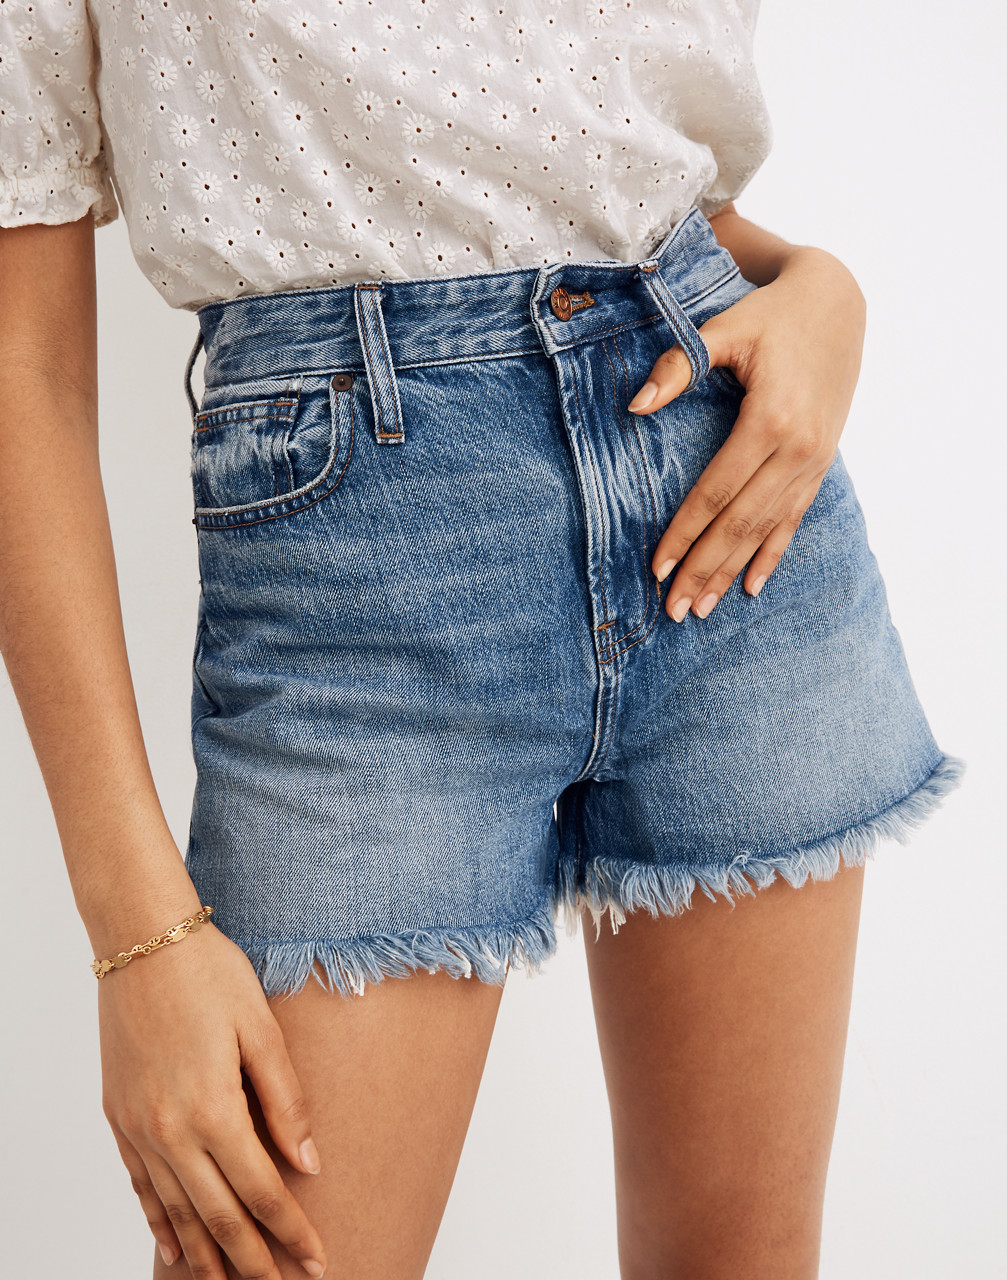 MW The Curvy Perfect Jean Short in Bergman Wash from